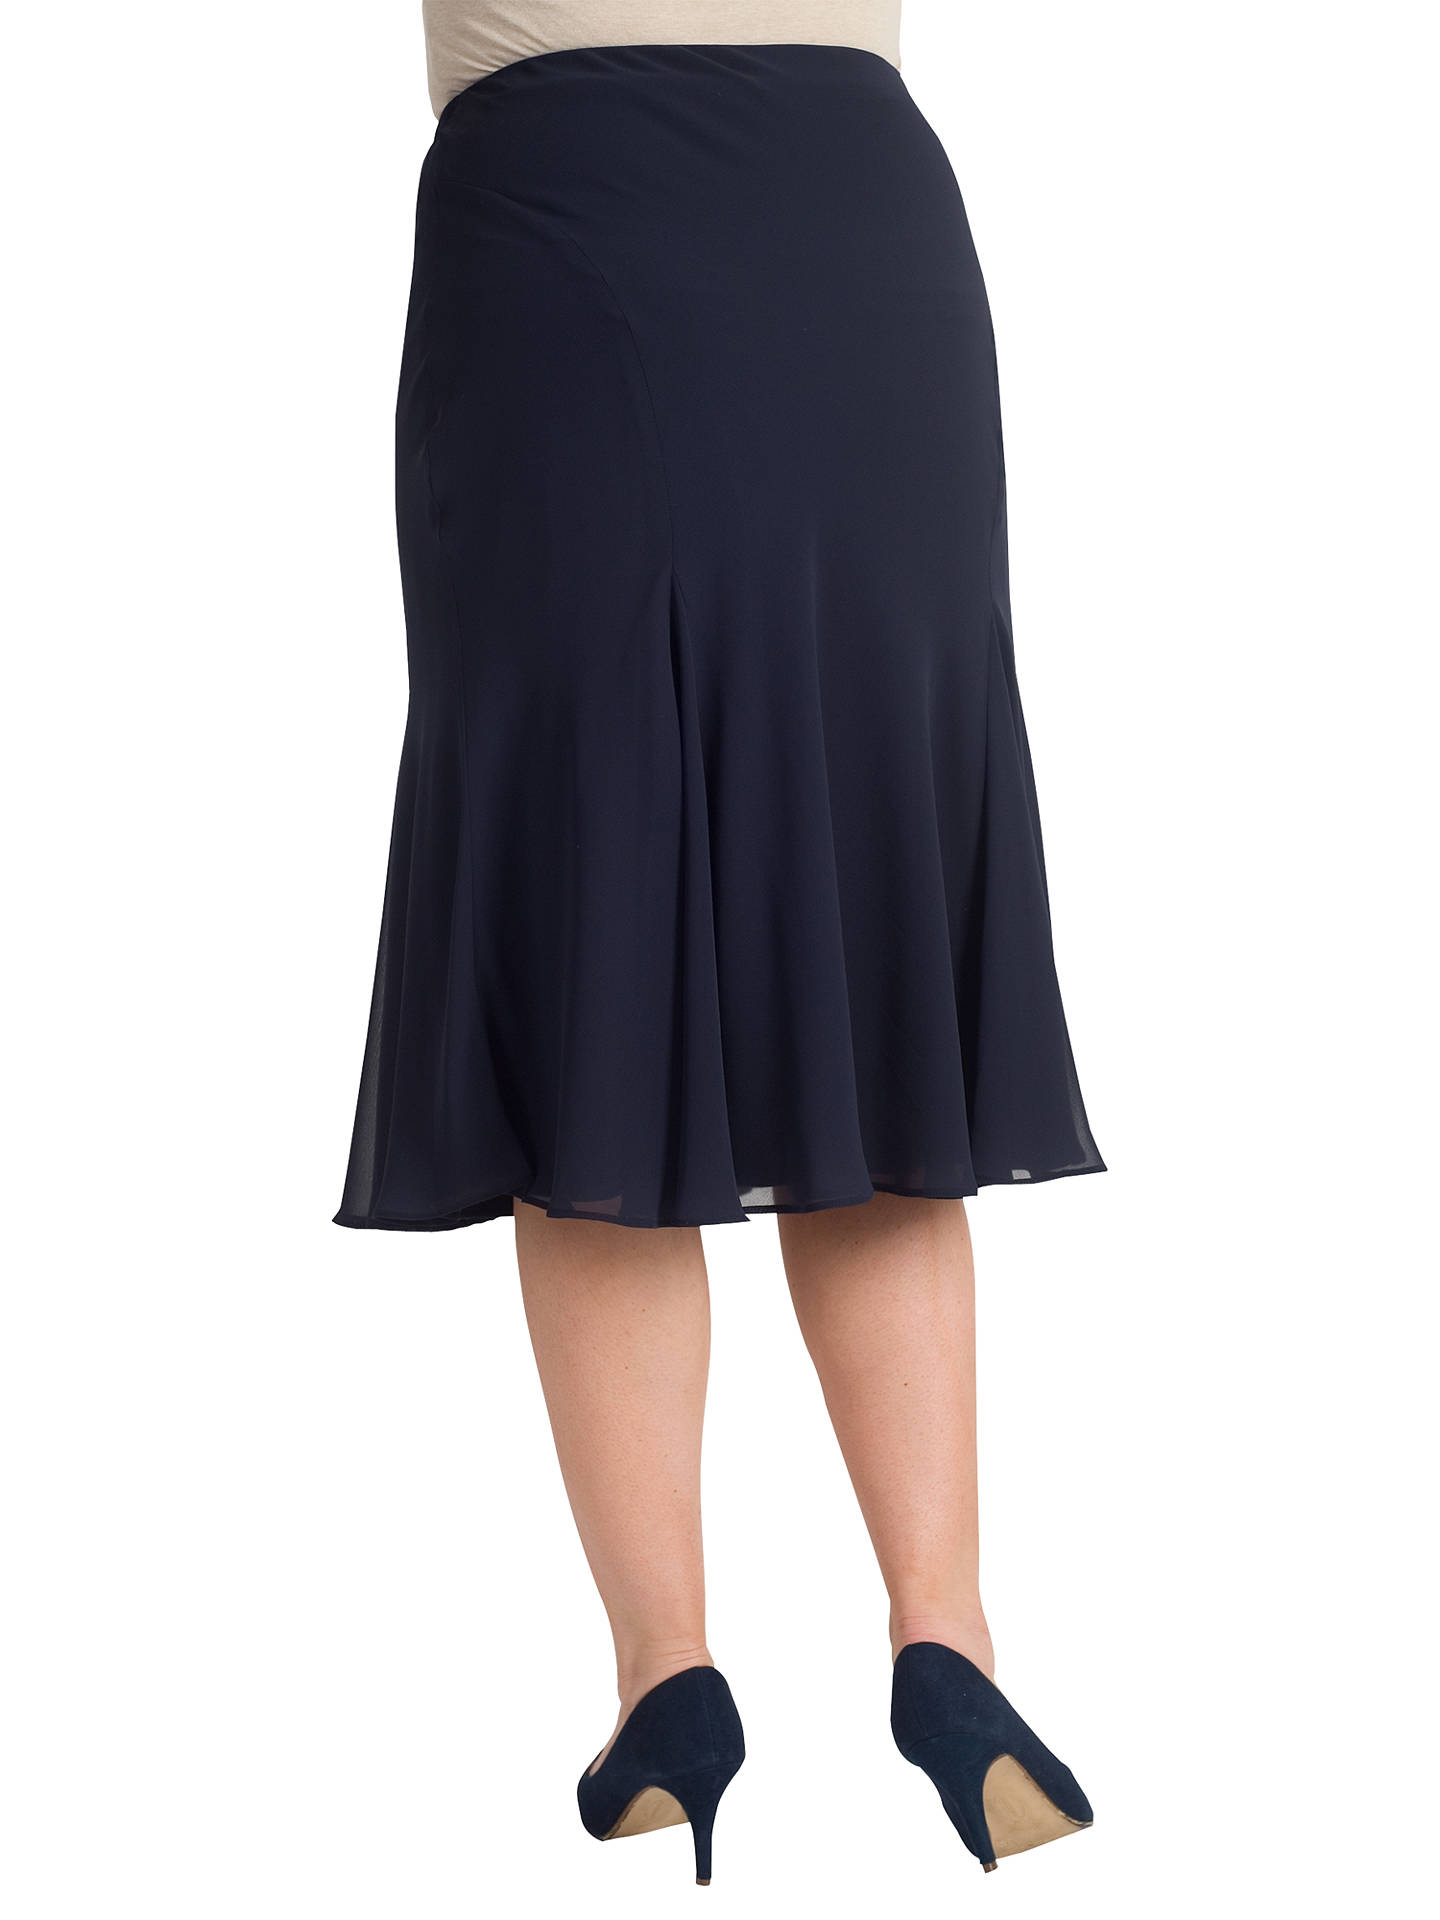 Buy Chesca Chiffon Skirt, Dark Navy, 14 Online at johnlewis.com